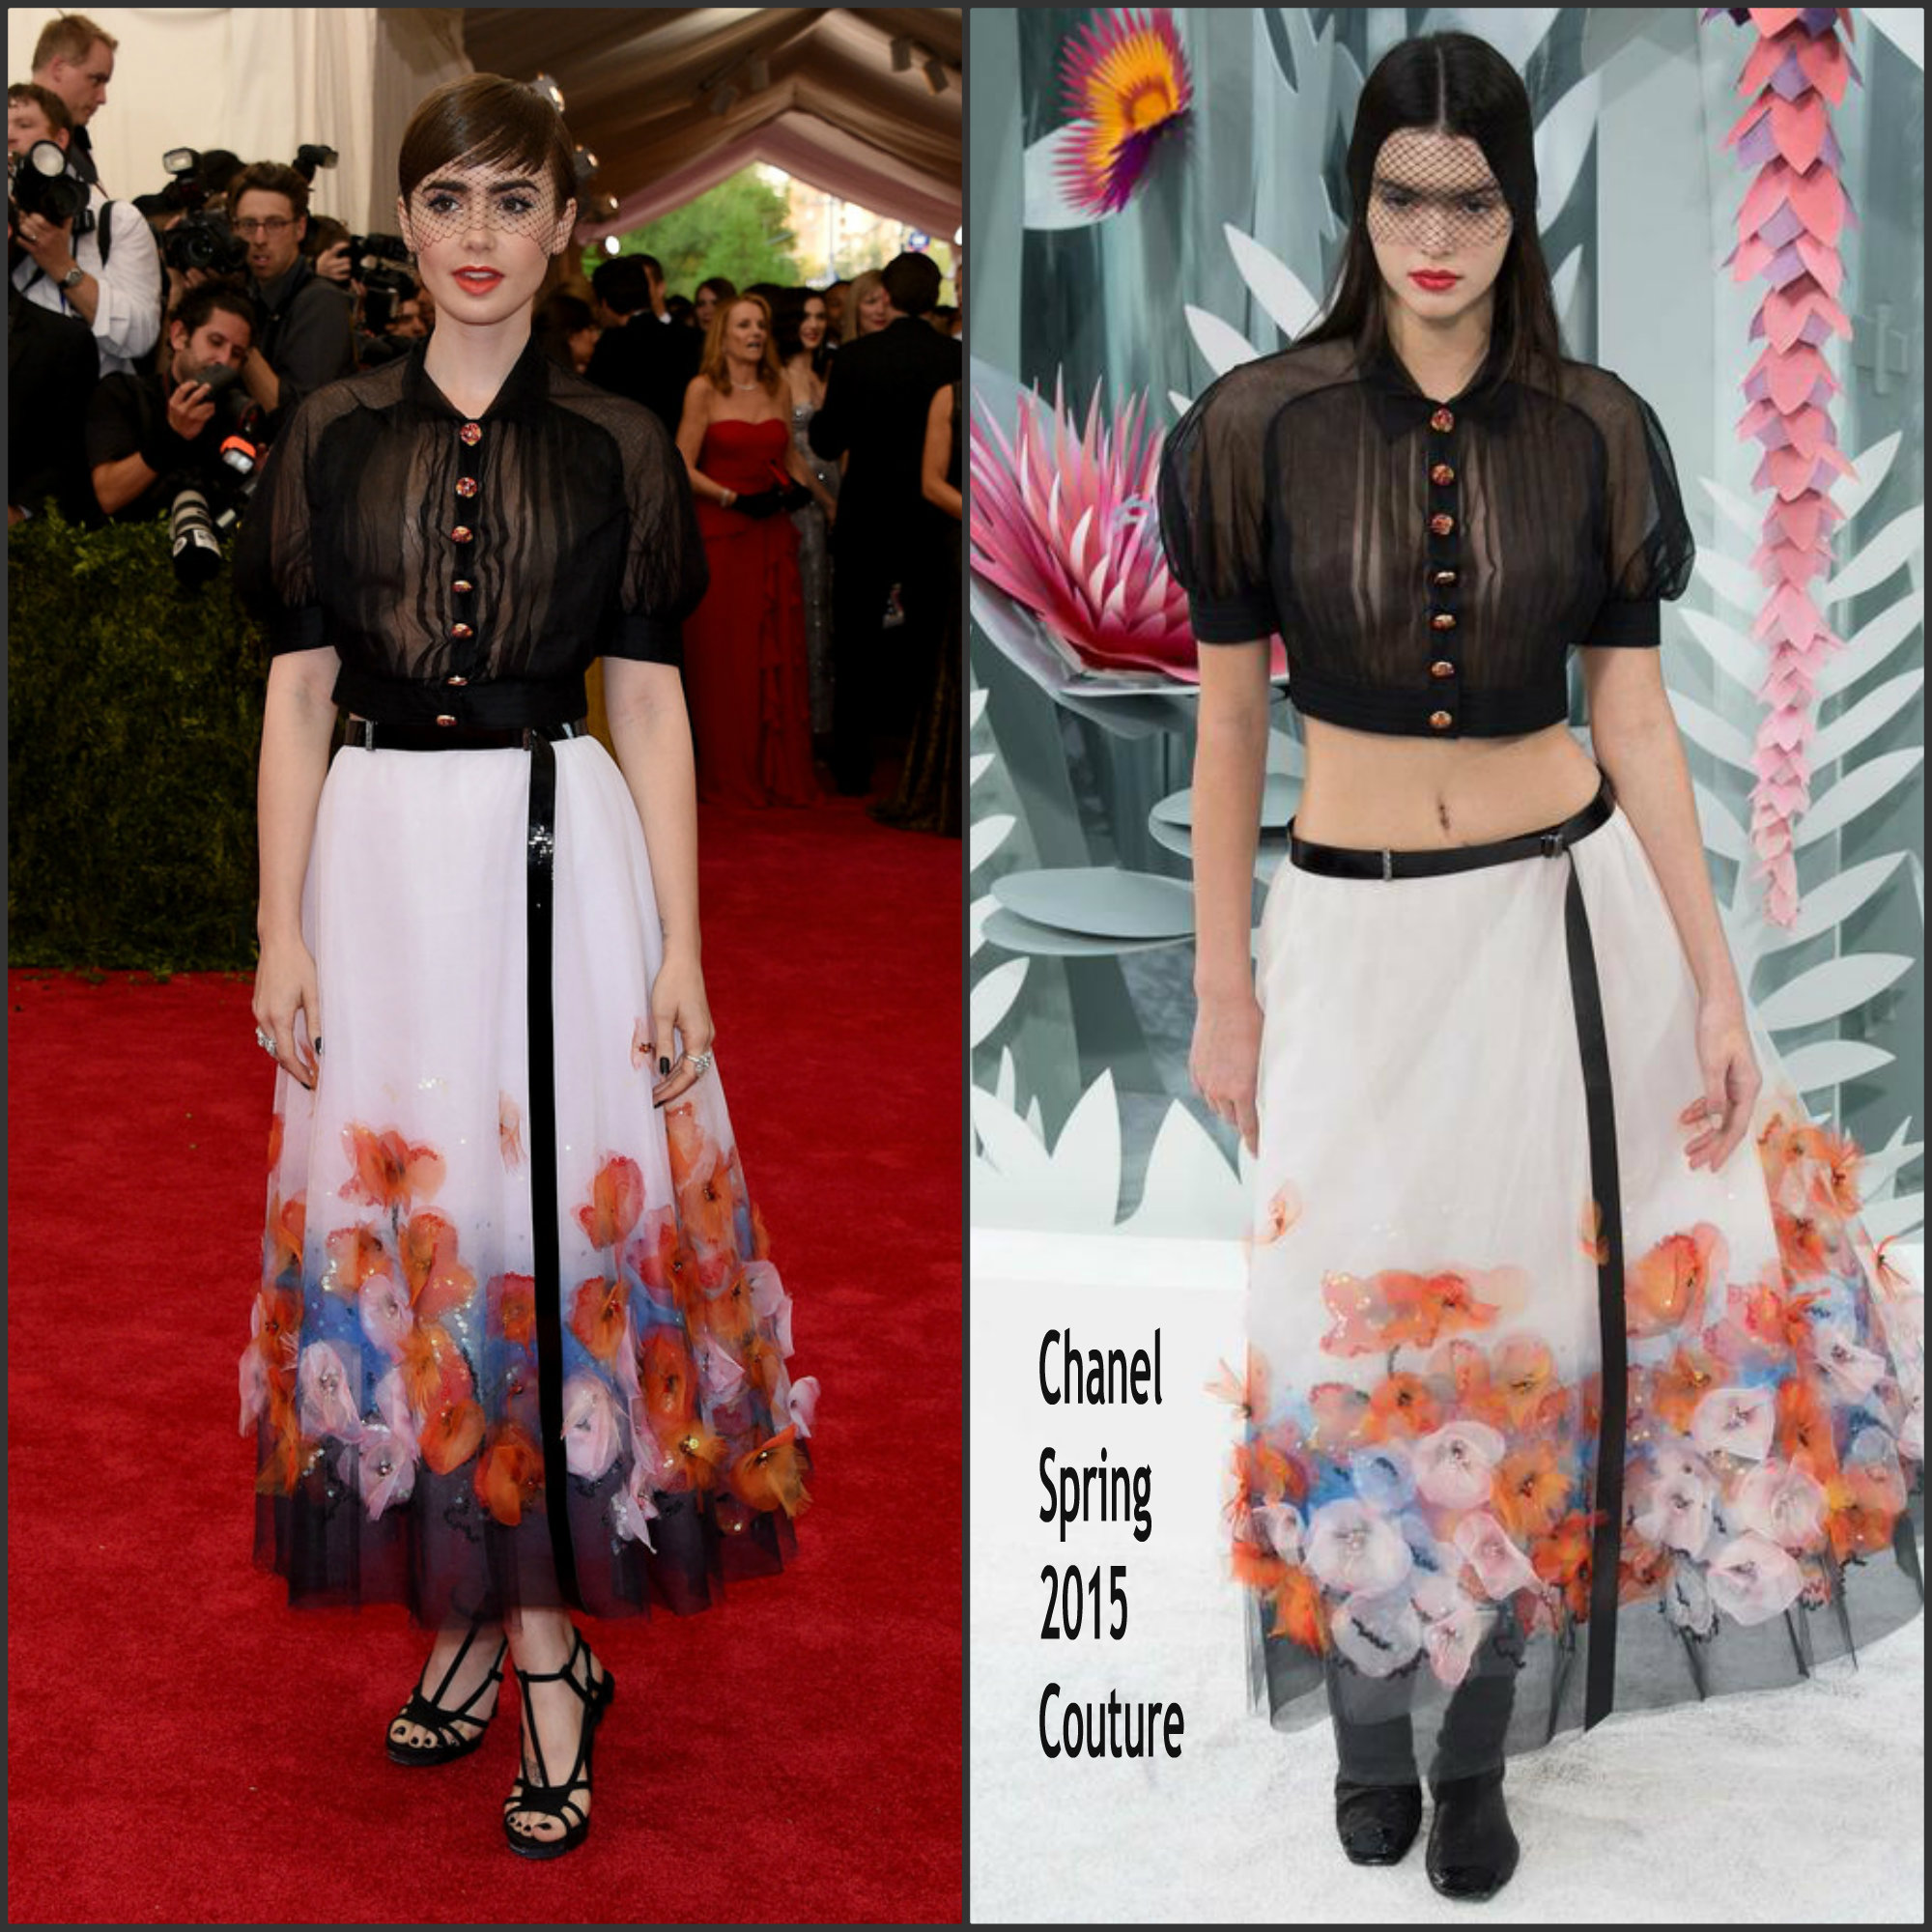 lily-collins-in-chanel-couture-at-the-2015-met-gala